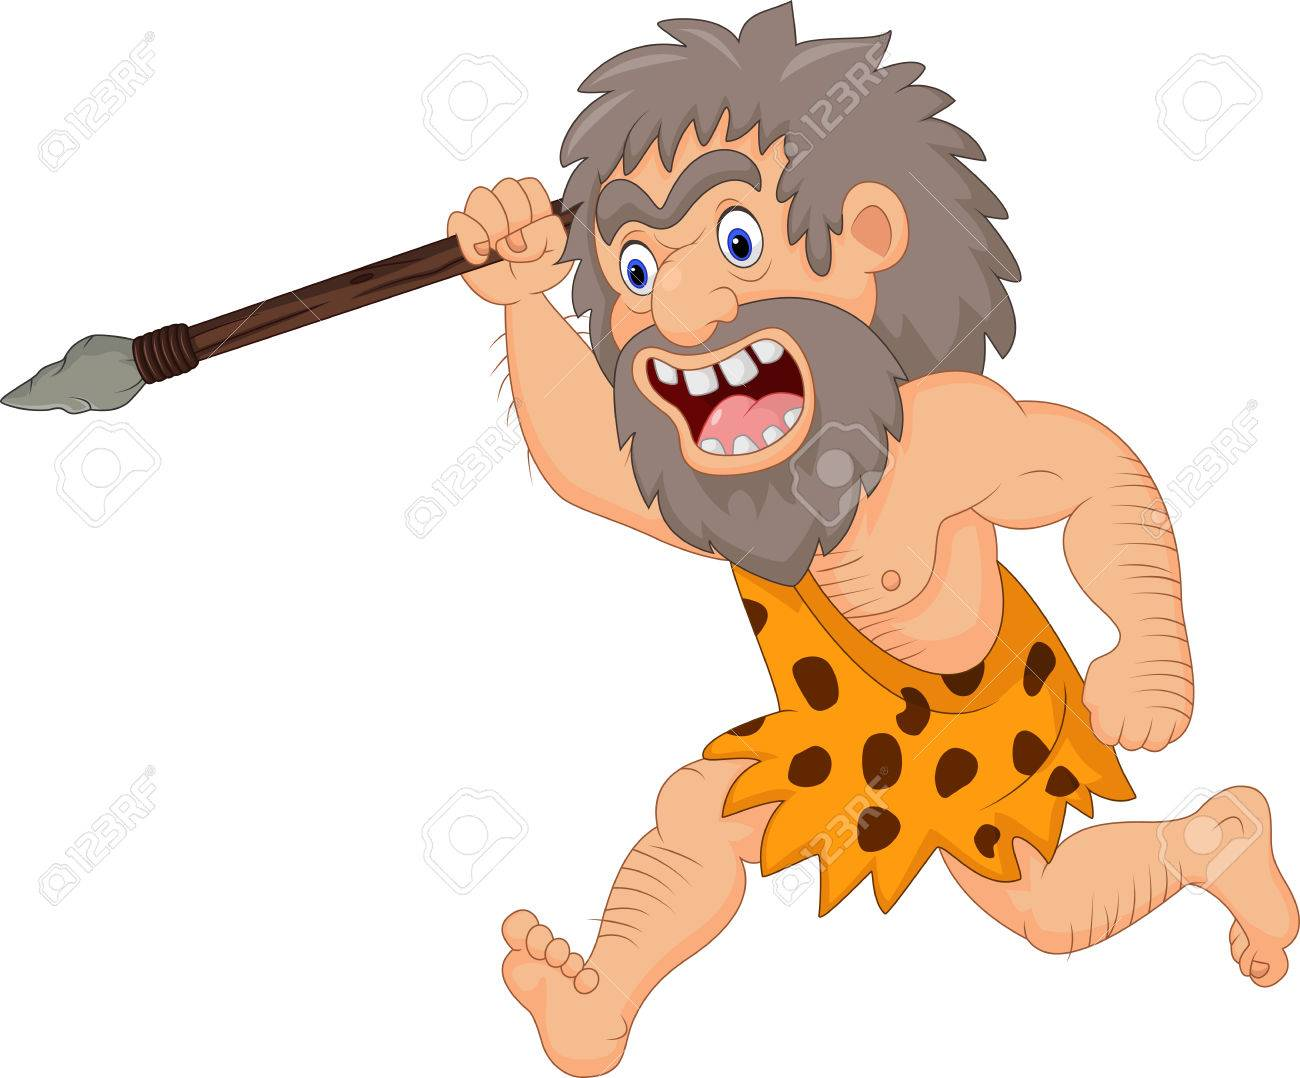 Vector illustration of Cartoon caveman hunting with spear - 85308257